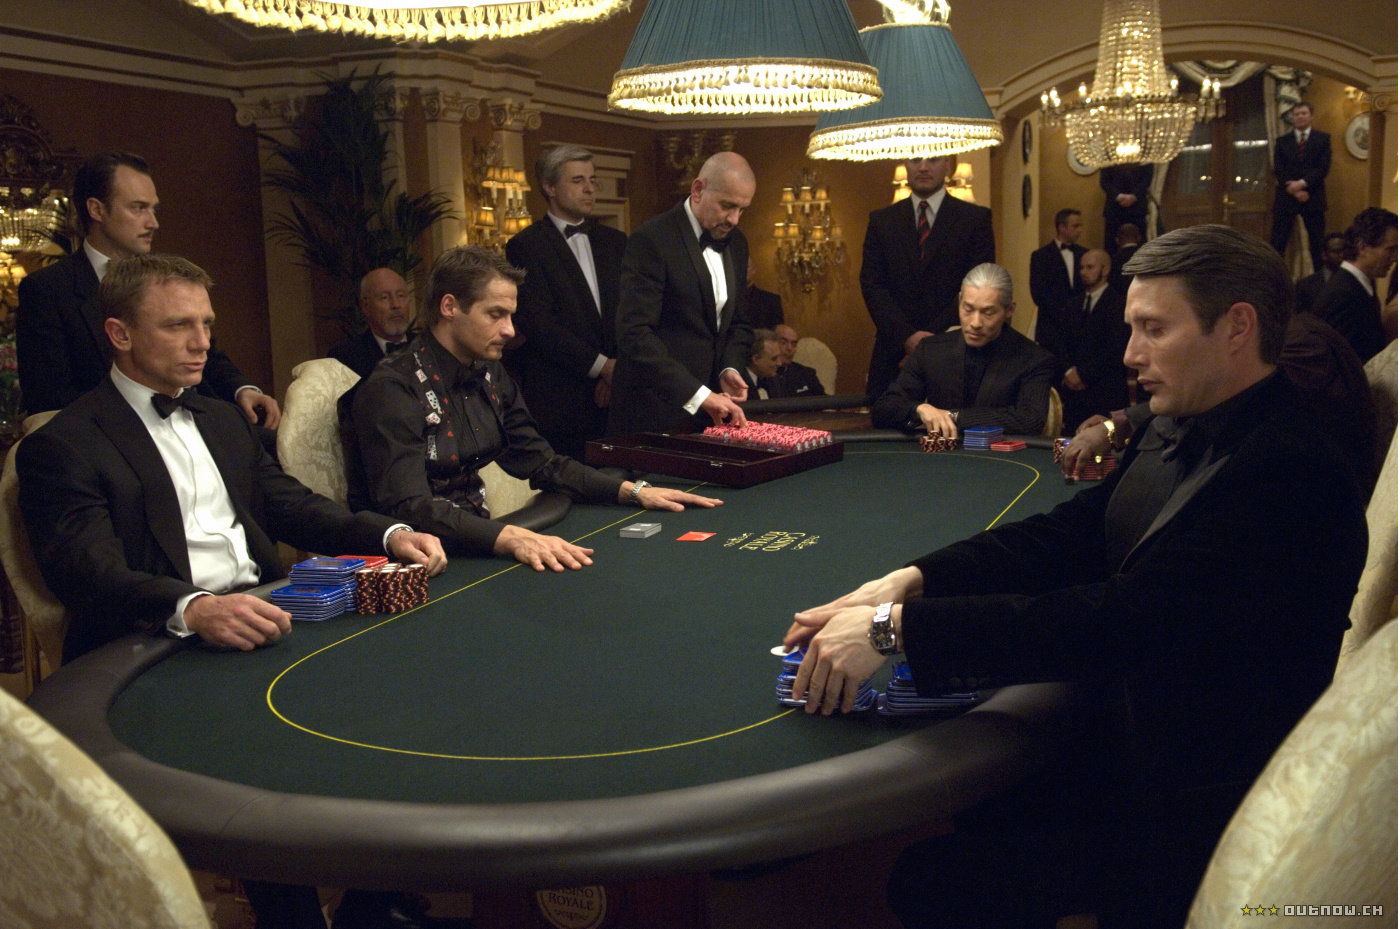 james bond casino royale poker scene